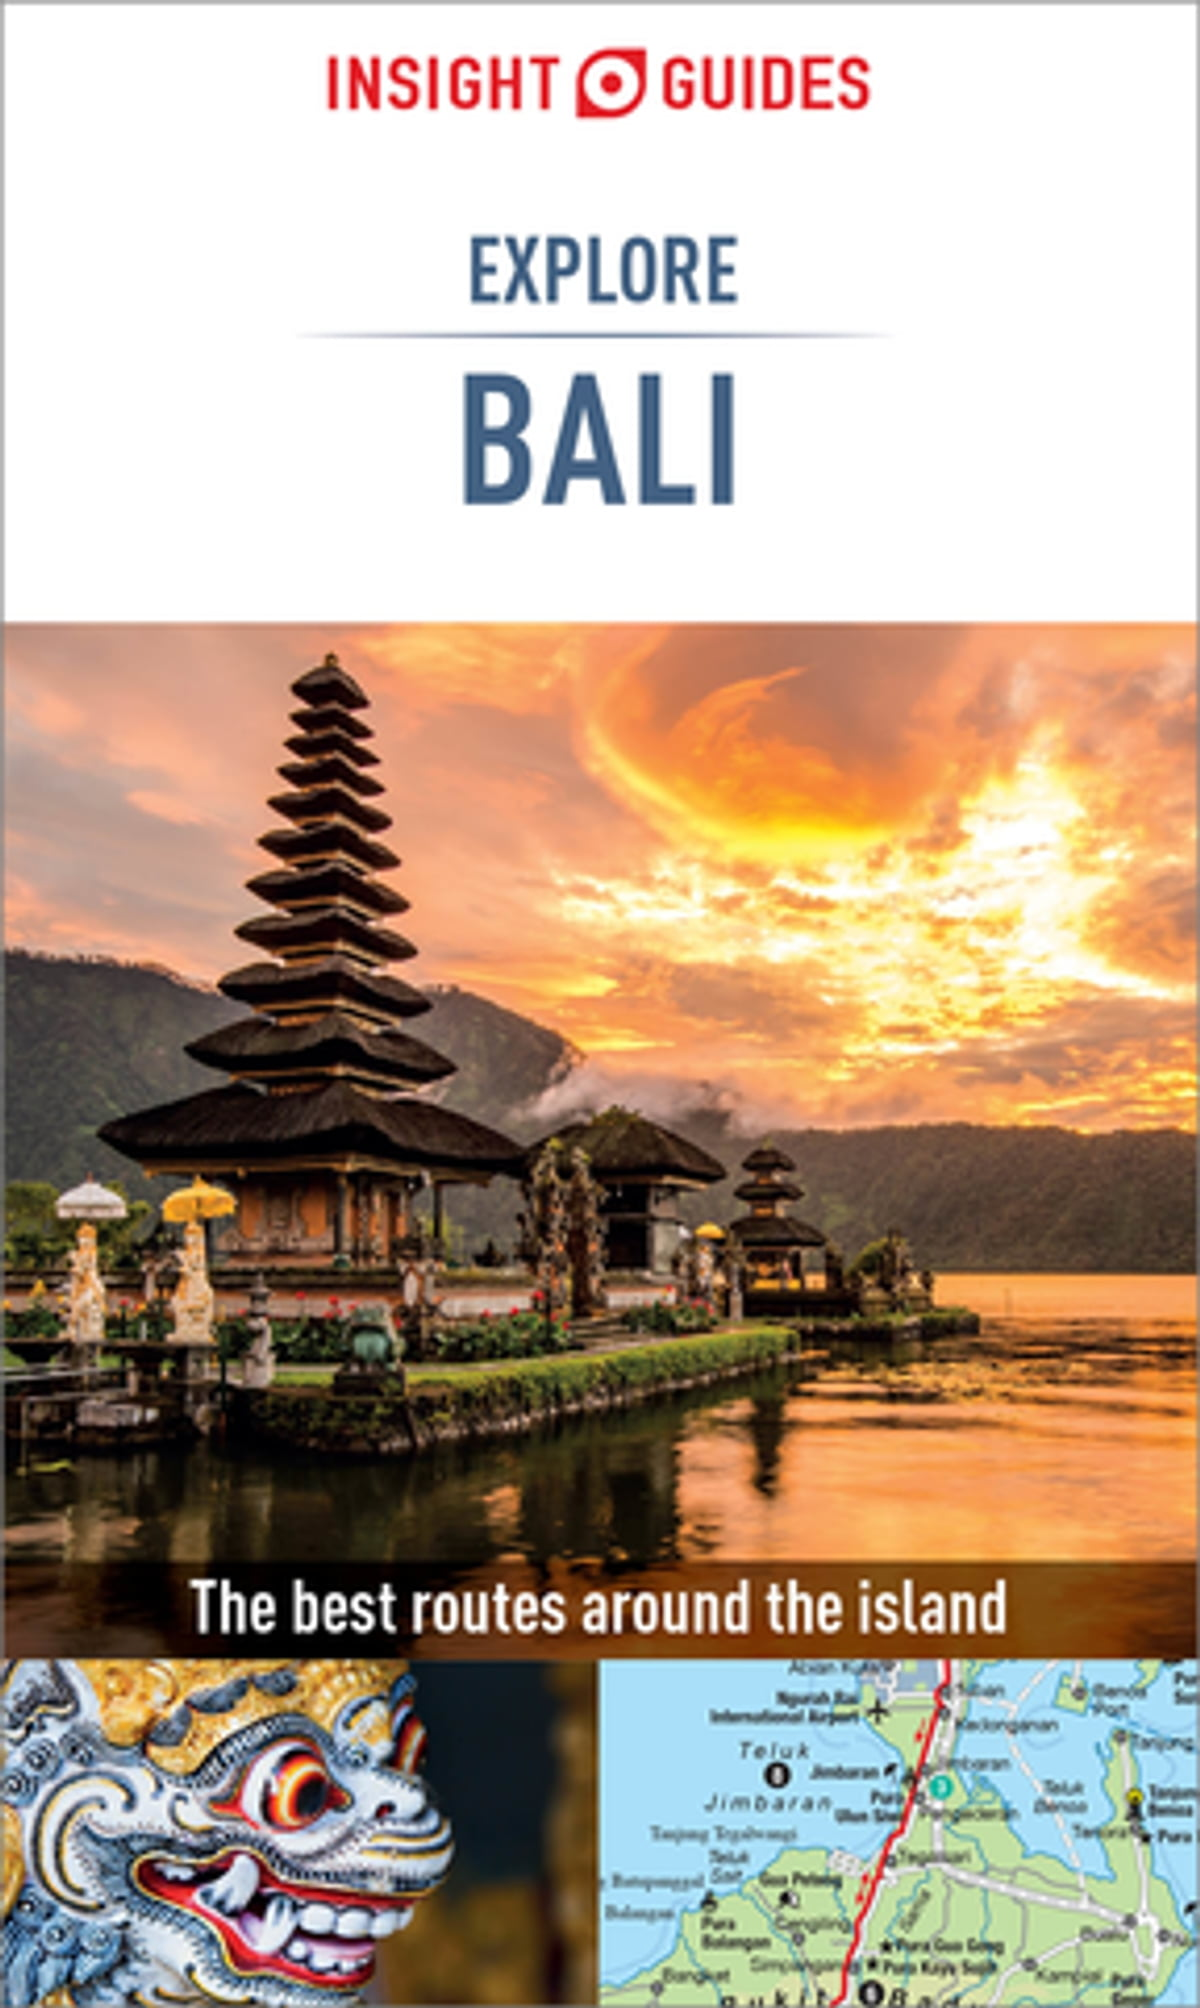 Insight Guides Explore Bali Travel Guide Ebook Ebook By Insight